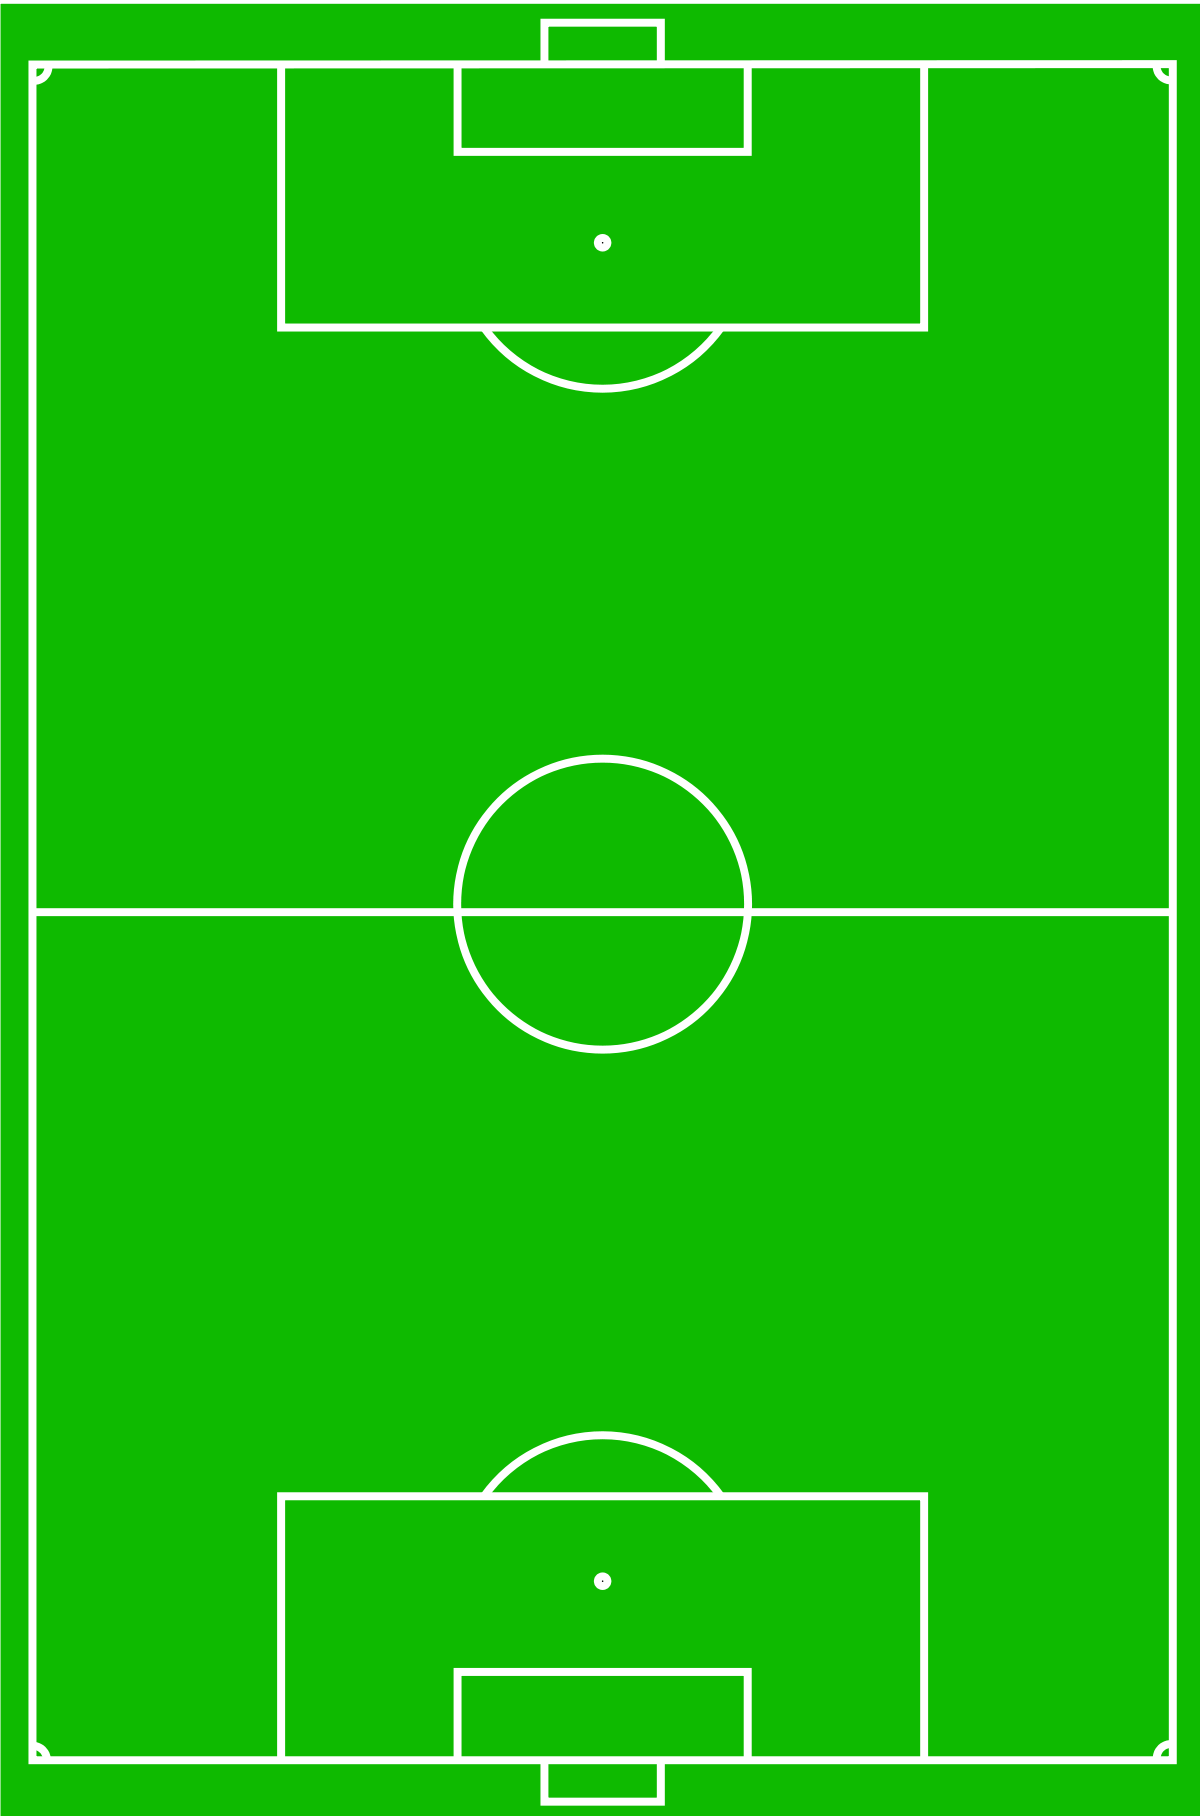 Association Football Positions Wikipedia Football Field Football Pitch Football Positions